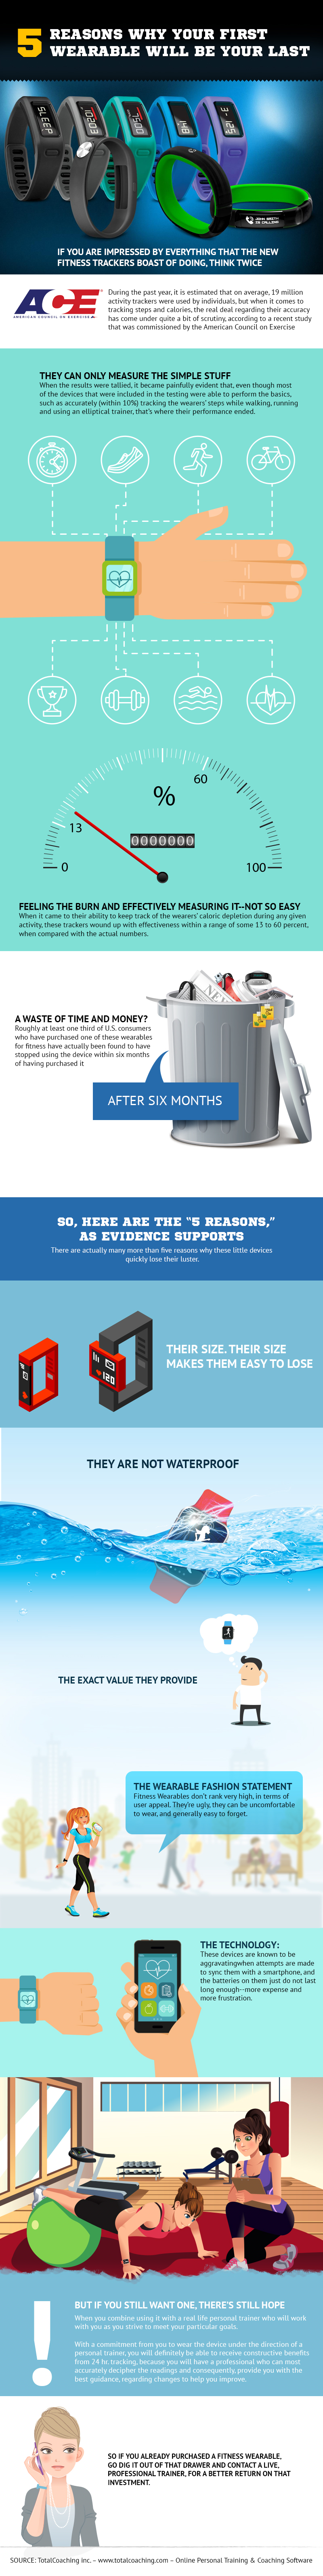 Infographic - 5 Reasons Why Your First Fitness Wearable Will Be Your Last